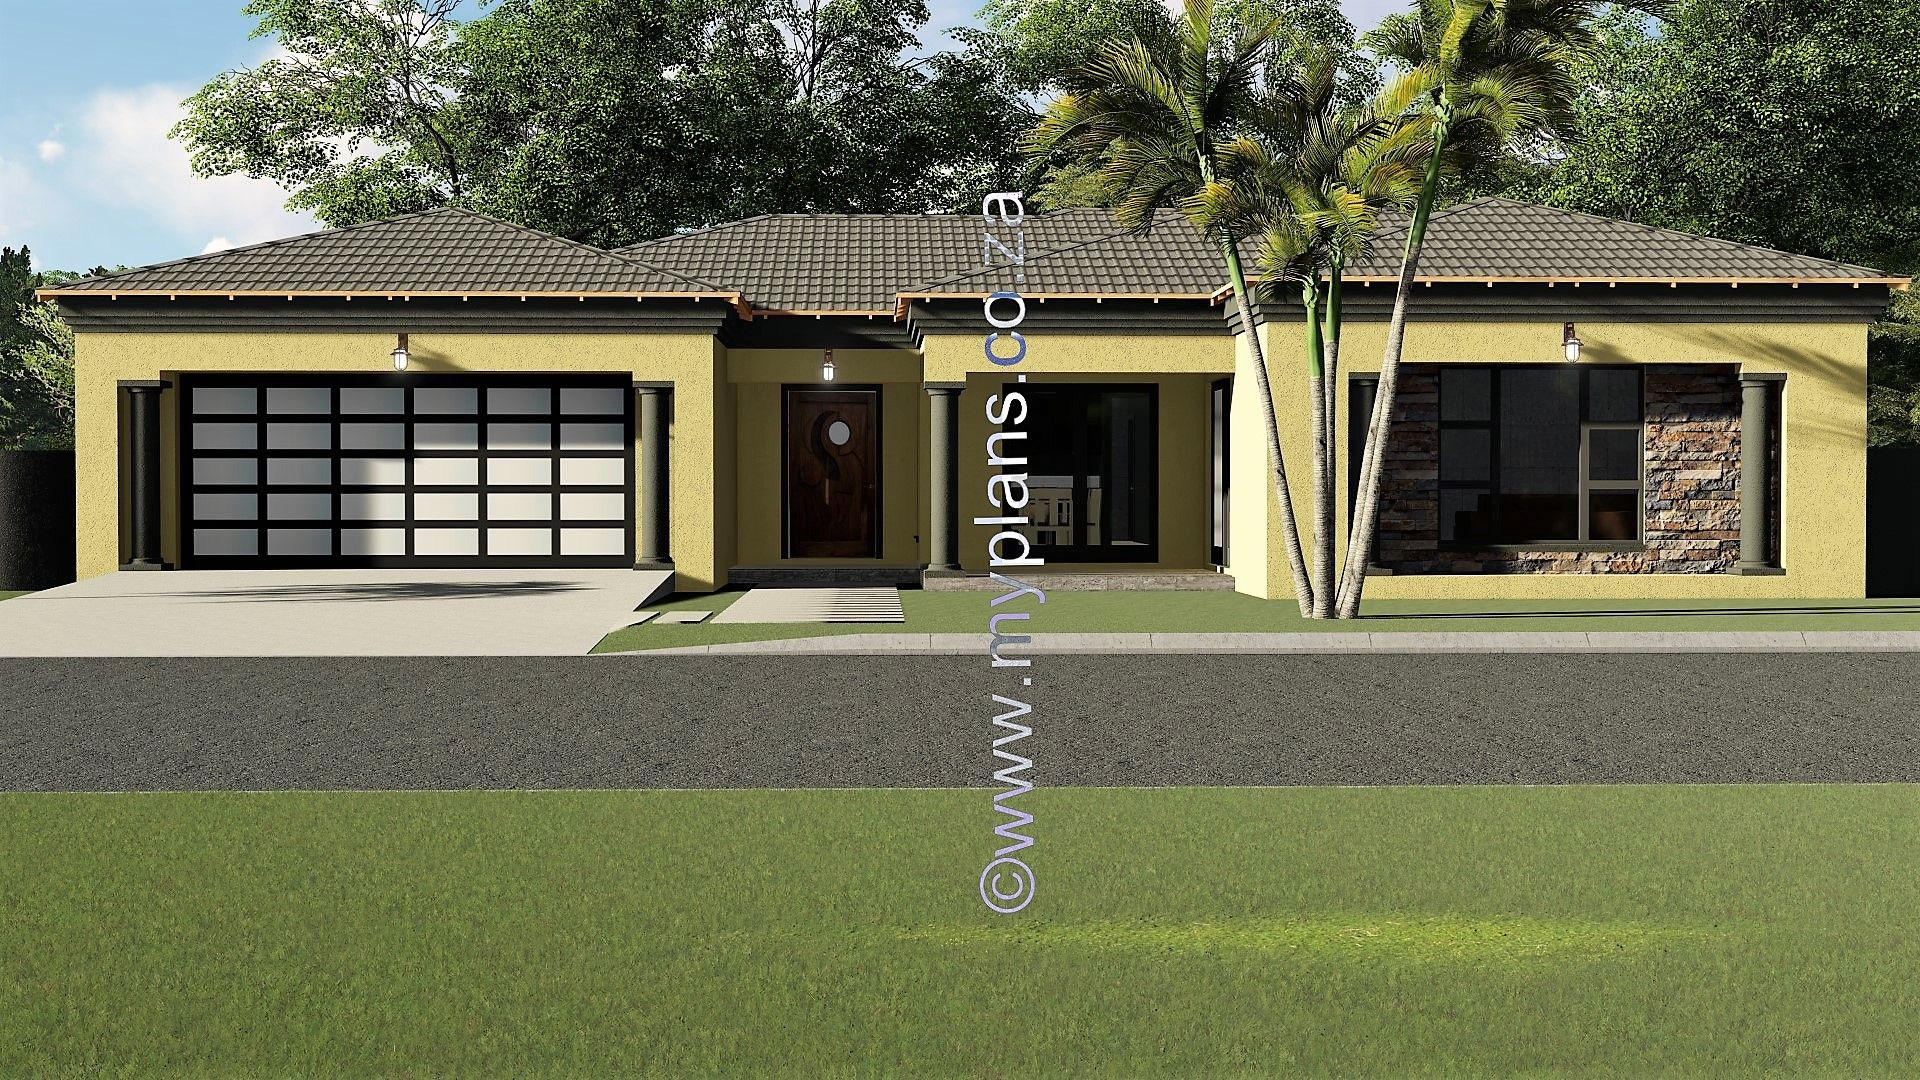 4 Bedroom House Plan Mlb 025s Bedroom House Plans 4 Bedroom House Plans House Plans South Africa